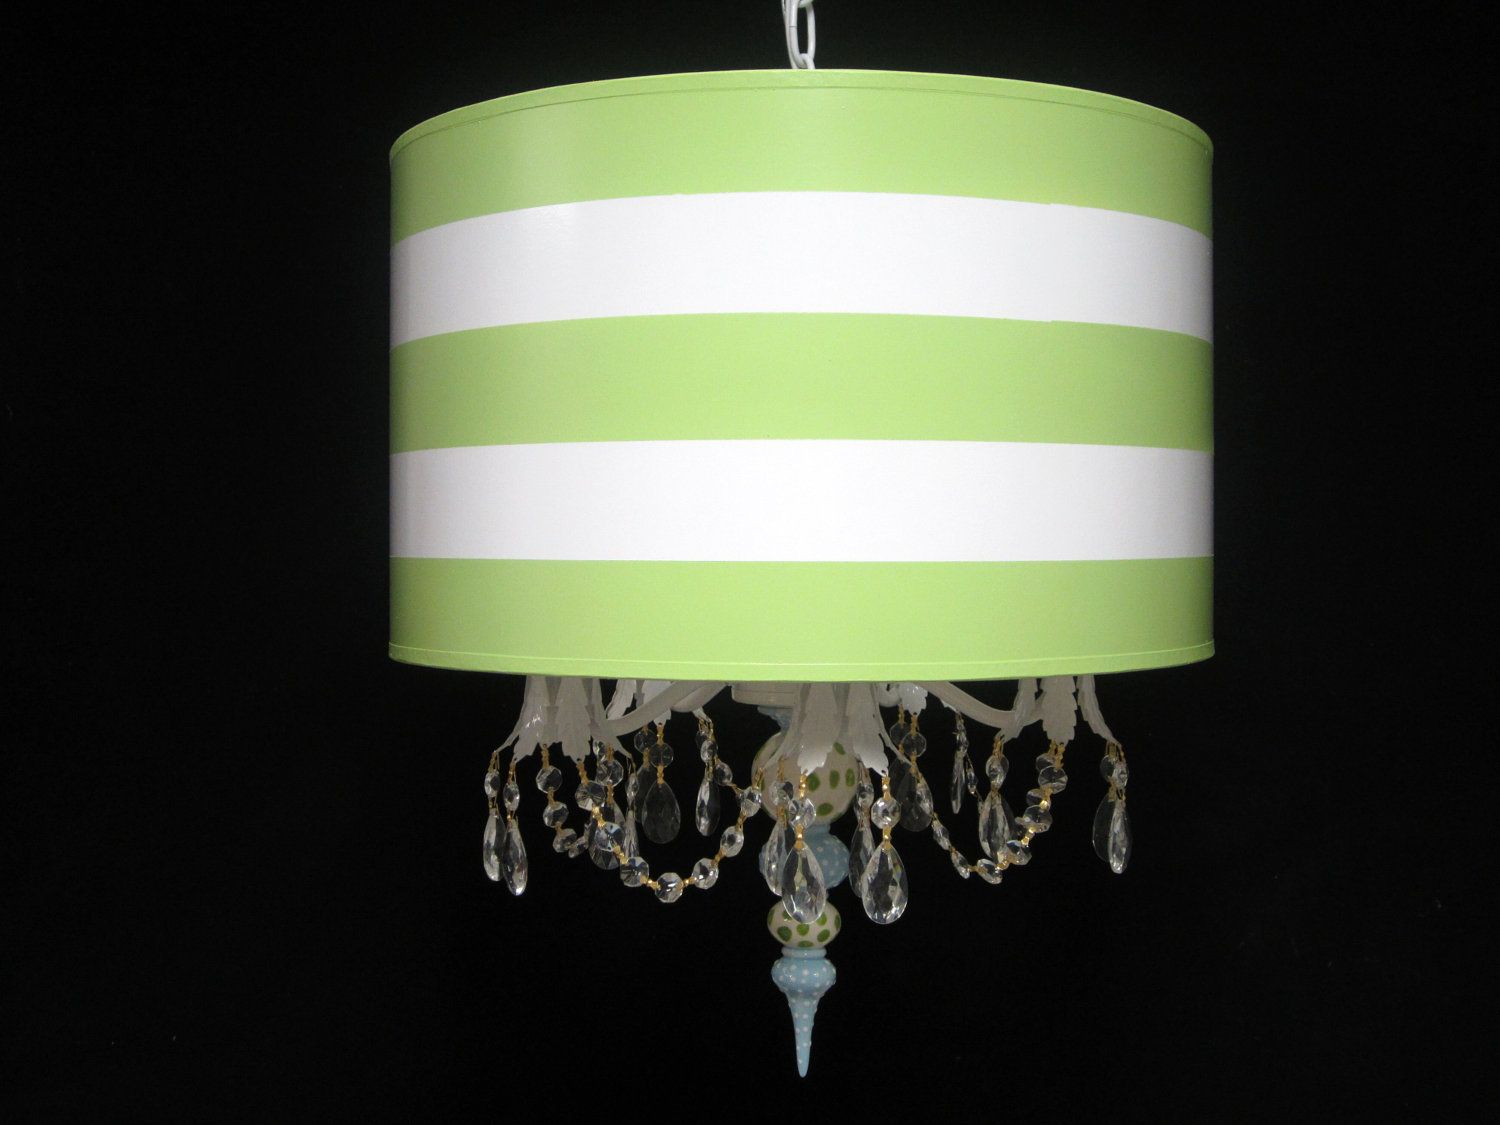 Drum pendant chandelier green stripes by whimsicalcollections drum pendant chandelier green stripes by whimsicalcollections arubaitofo Images